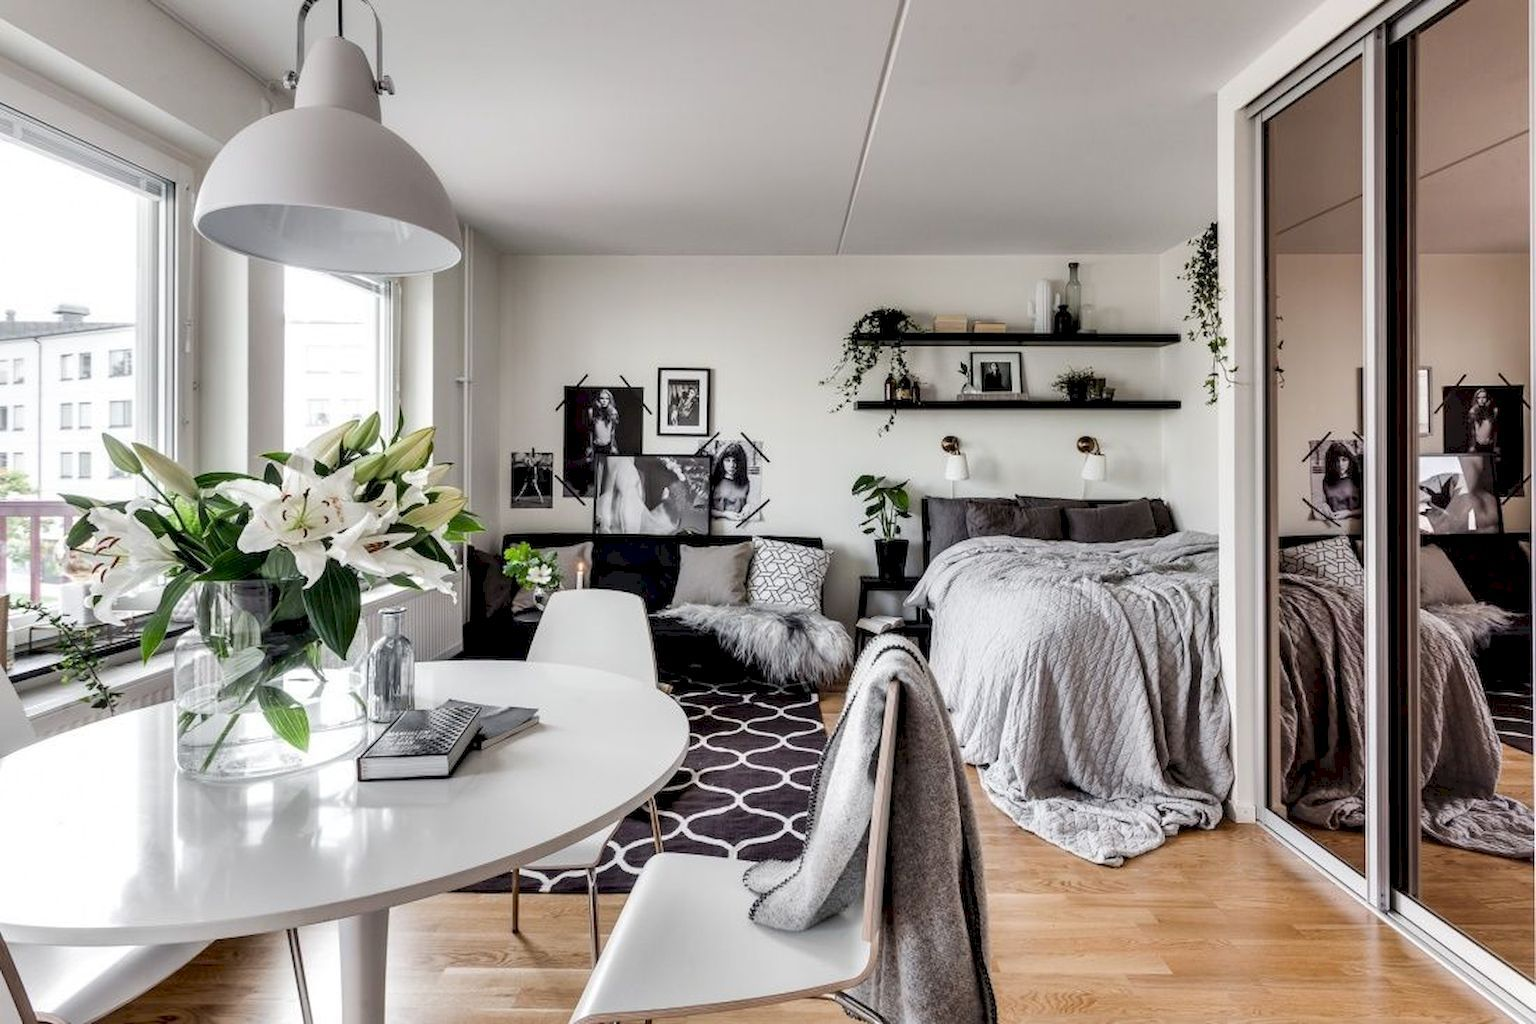 100+ Small Studio Apartment Layout Design Ideas images